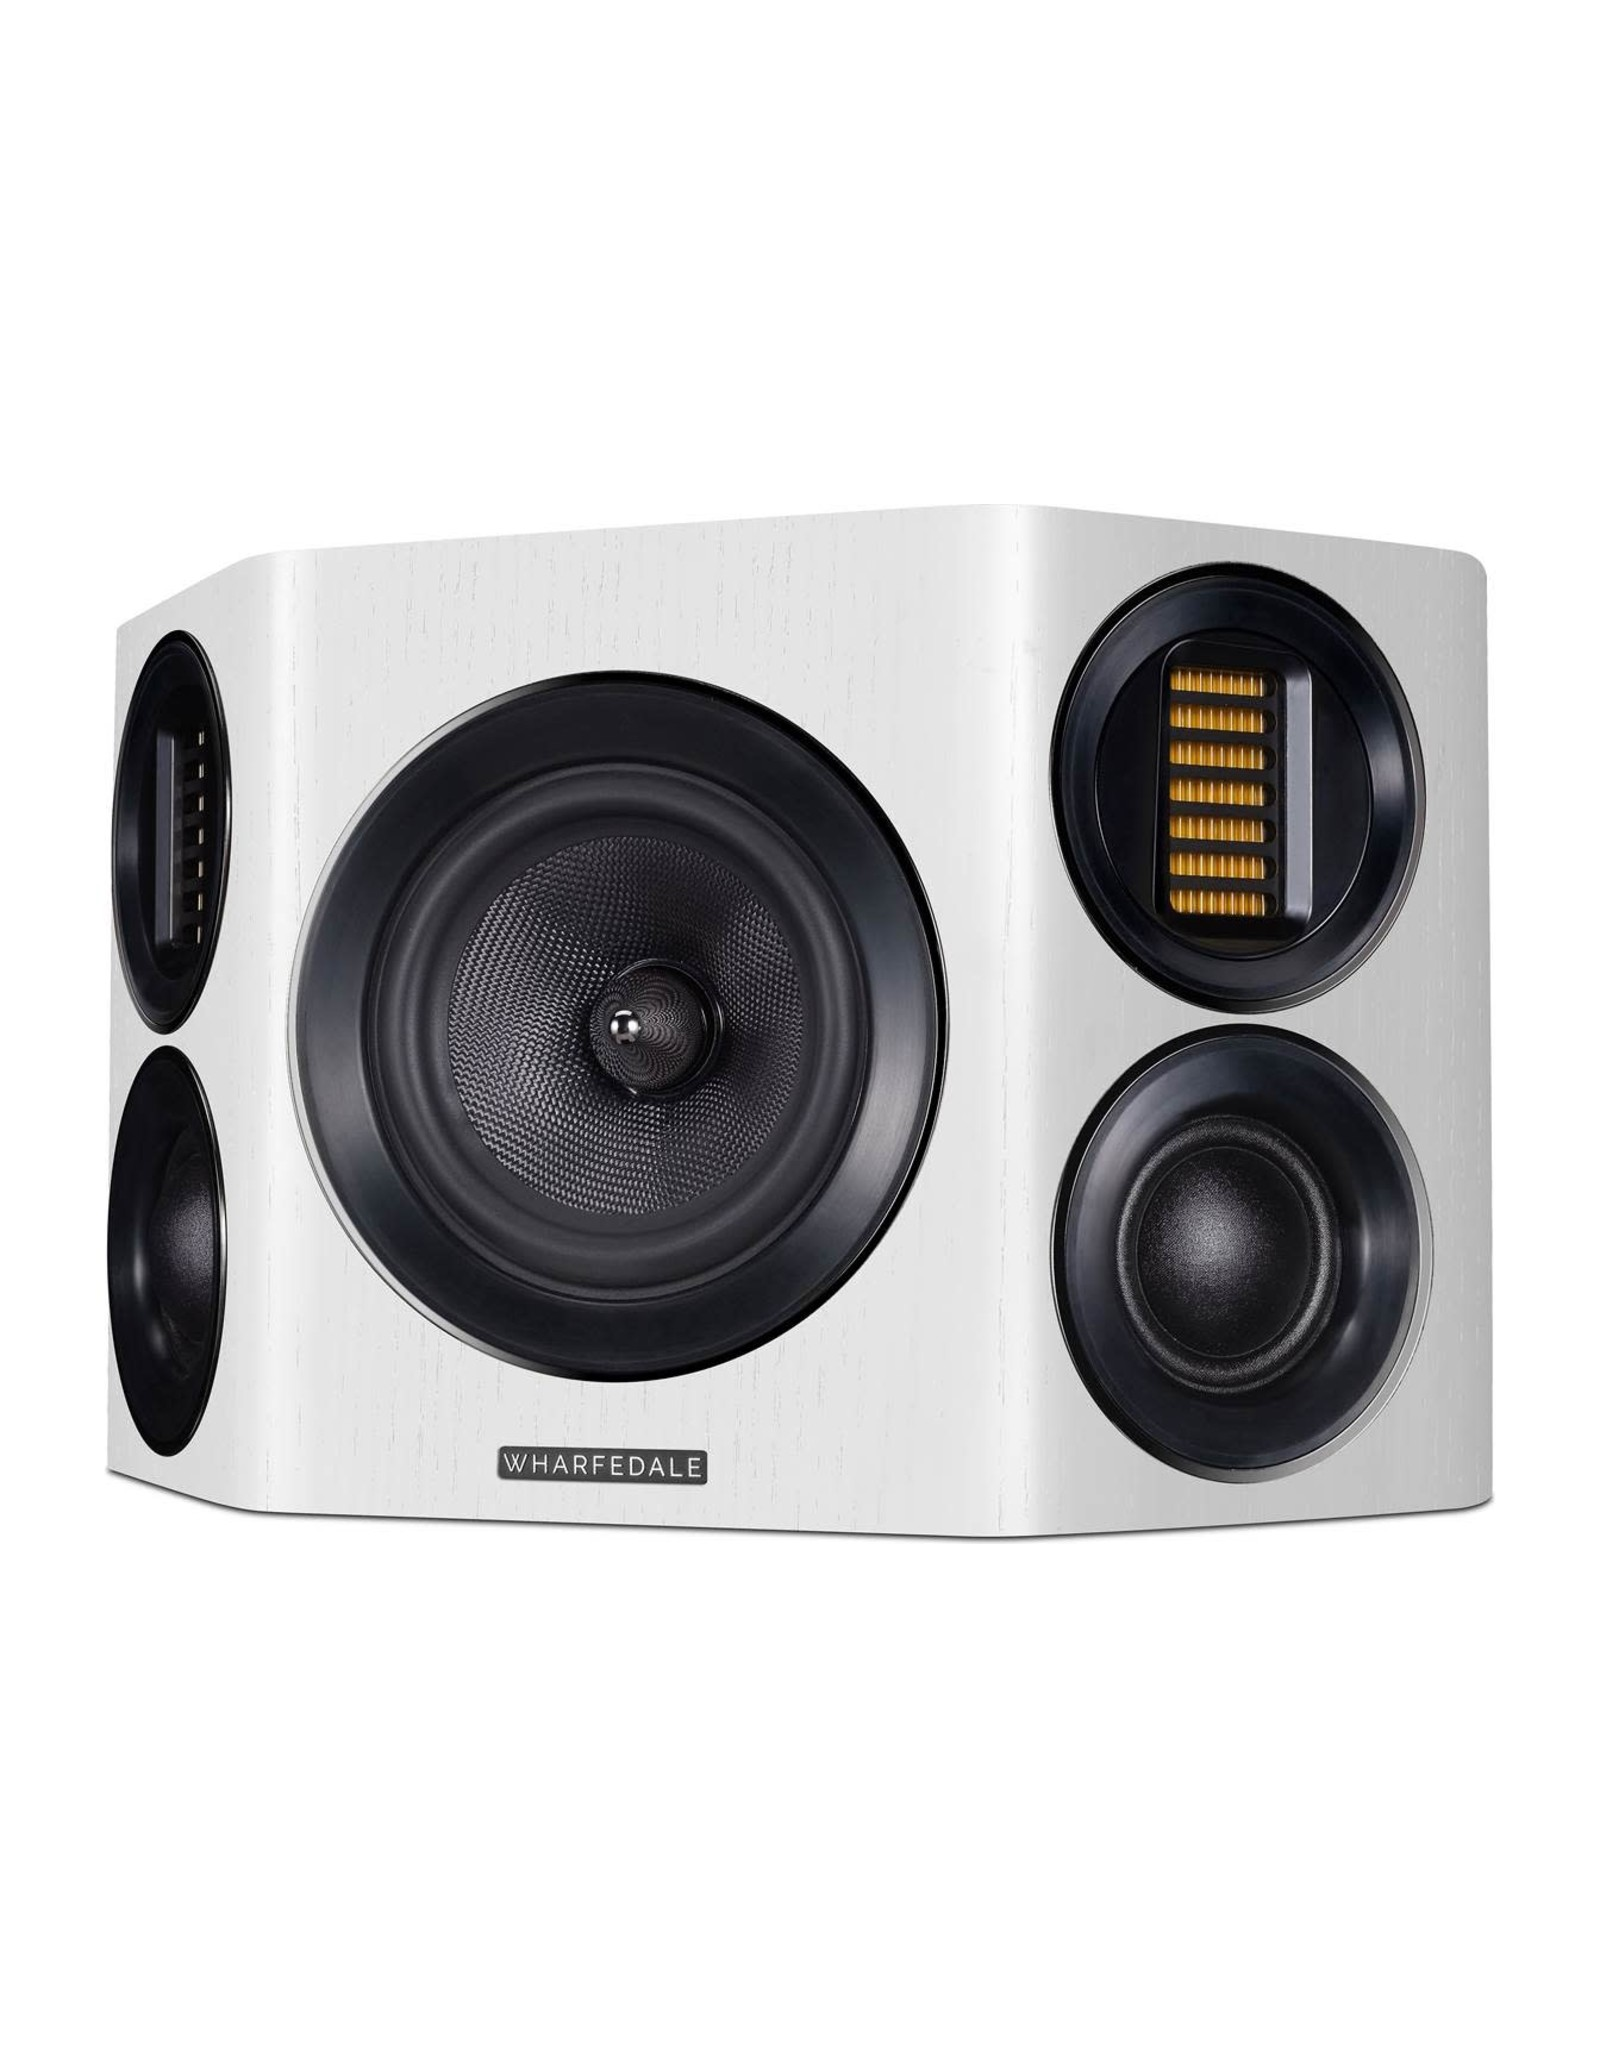 Wharfedale Wharfedale EVO4.S Surround Speakers